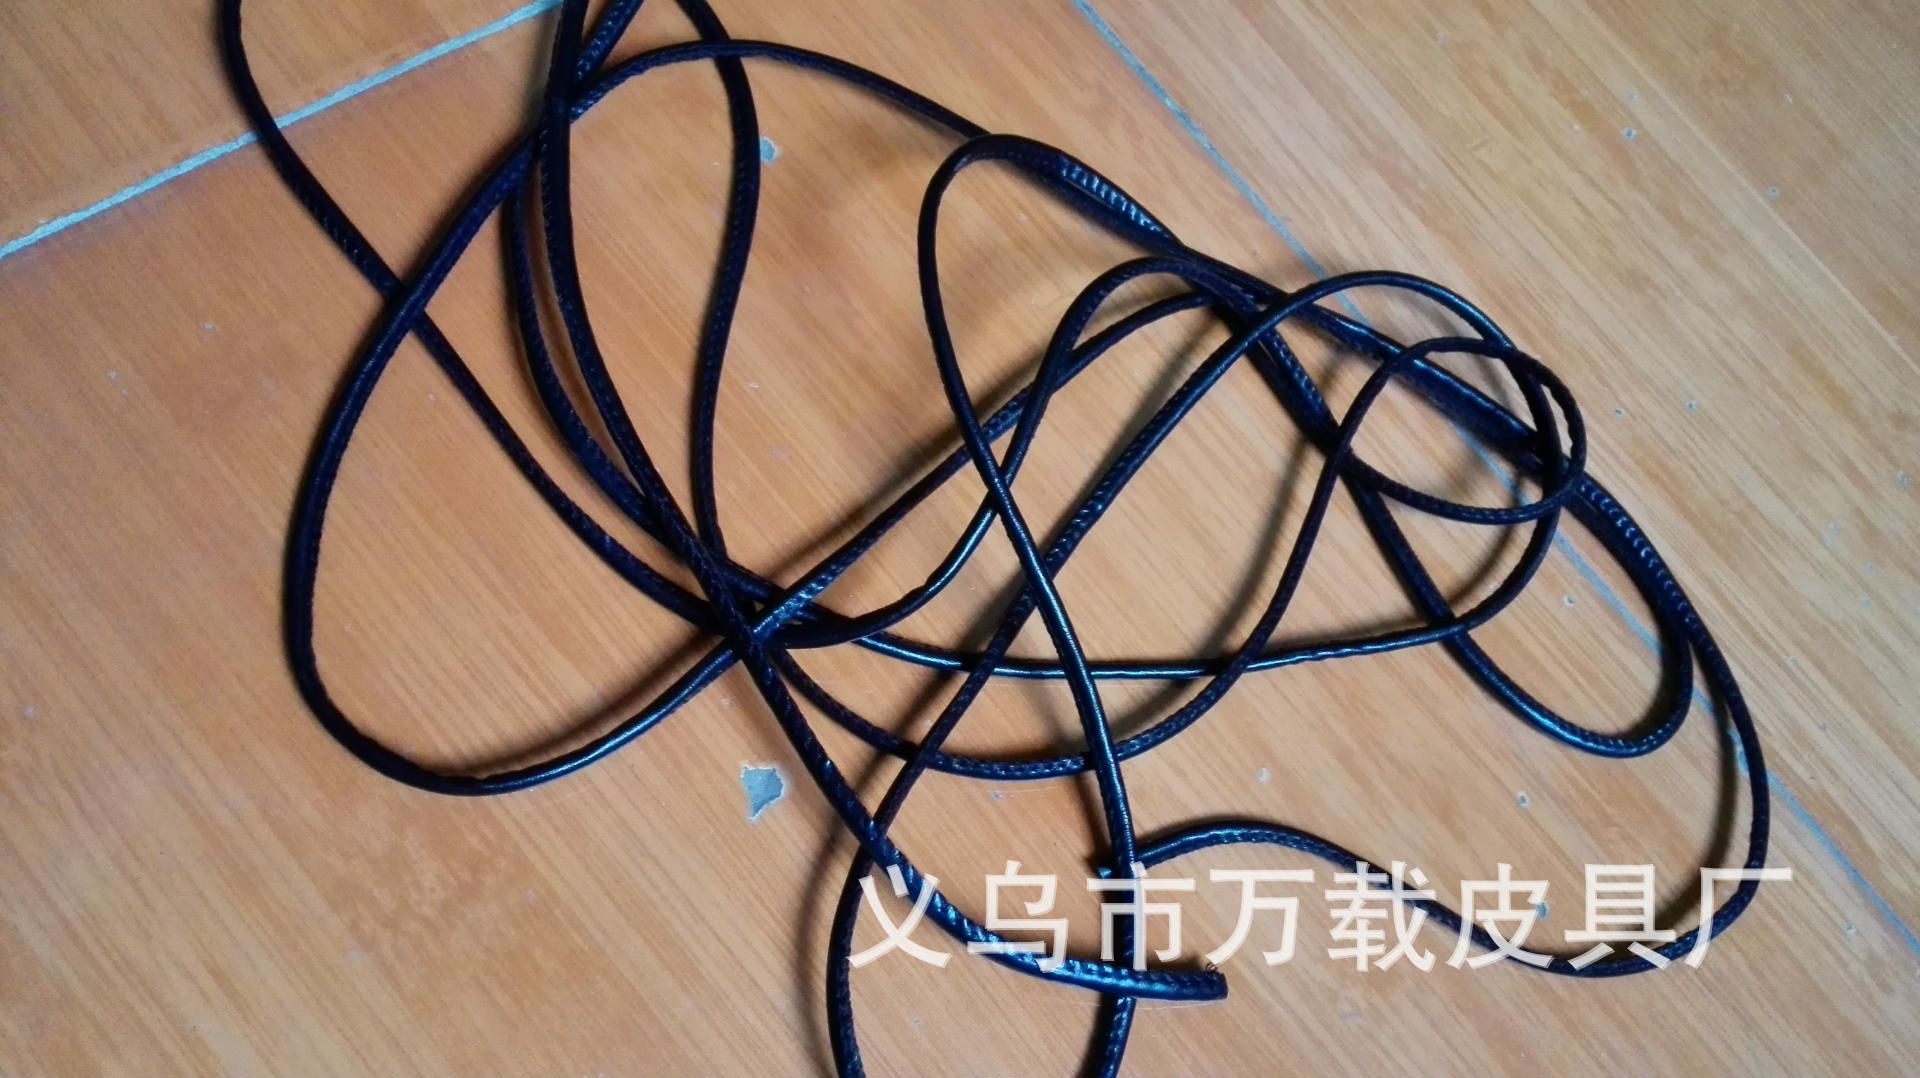 dây đeo    Clothing accessories wholesale / nylon / black / white / lanyard / tag rope / 4mm / 10mm